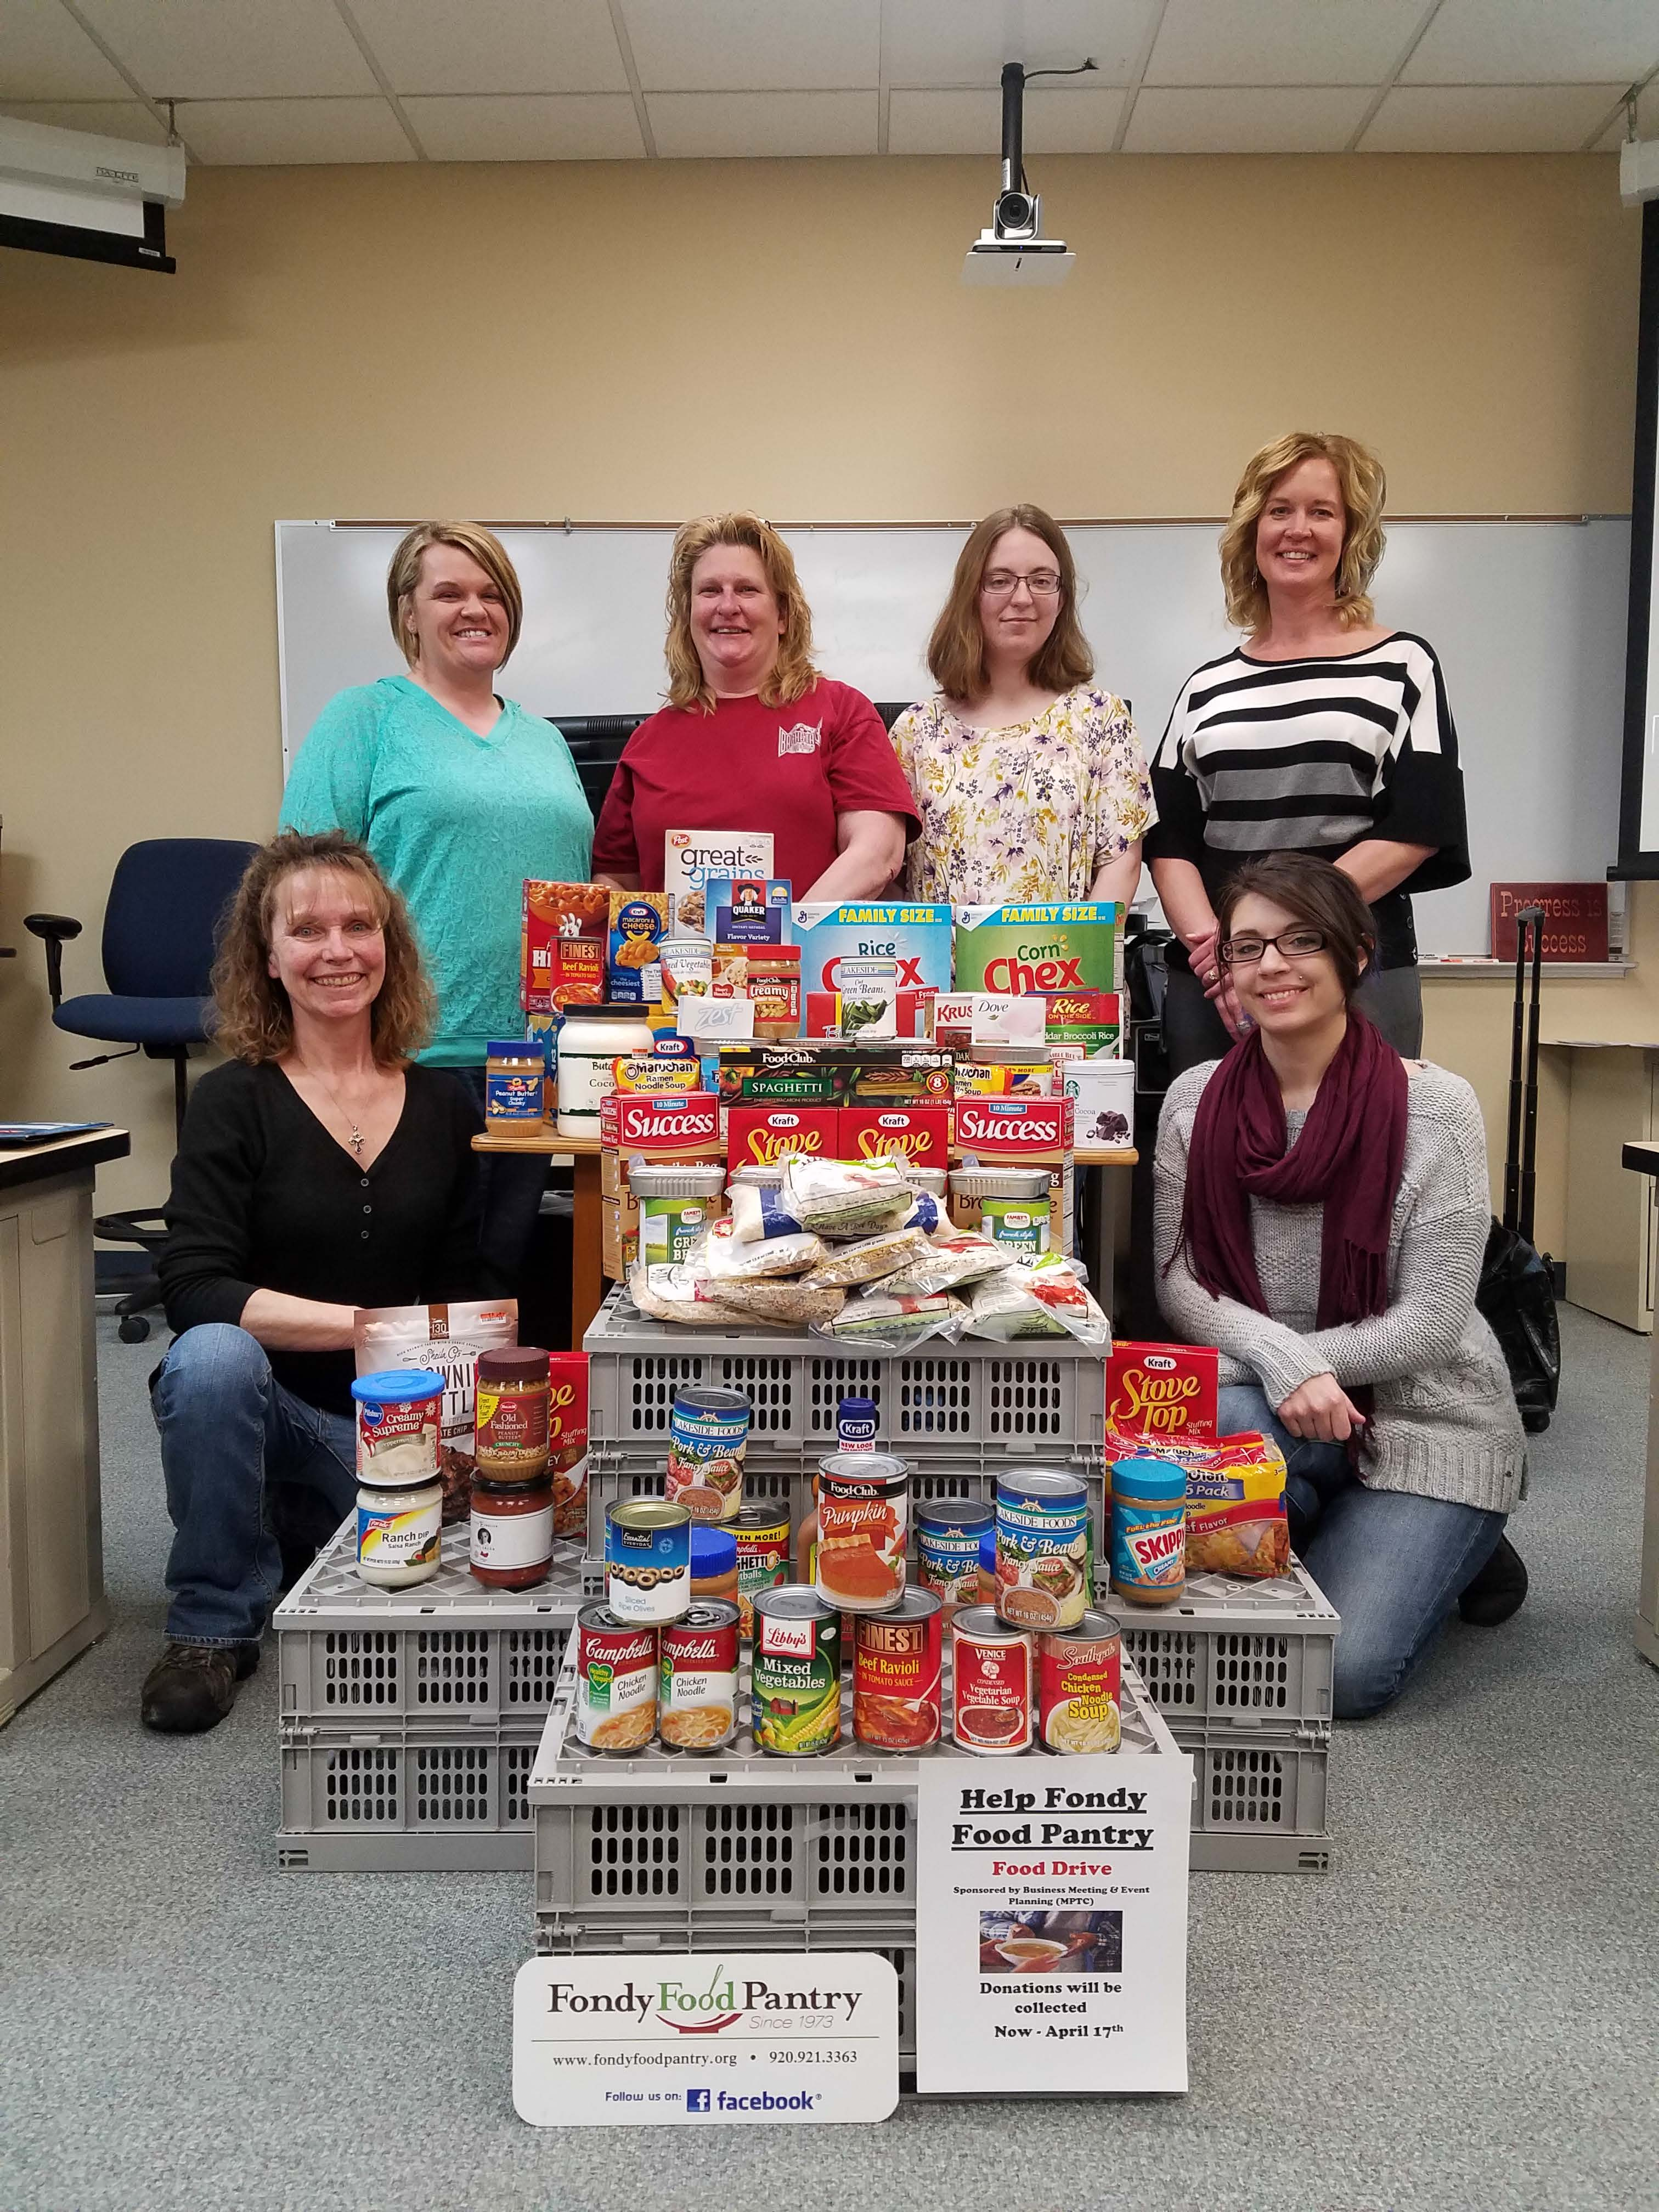 Students pose by boxed goods for food pantry donation